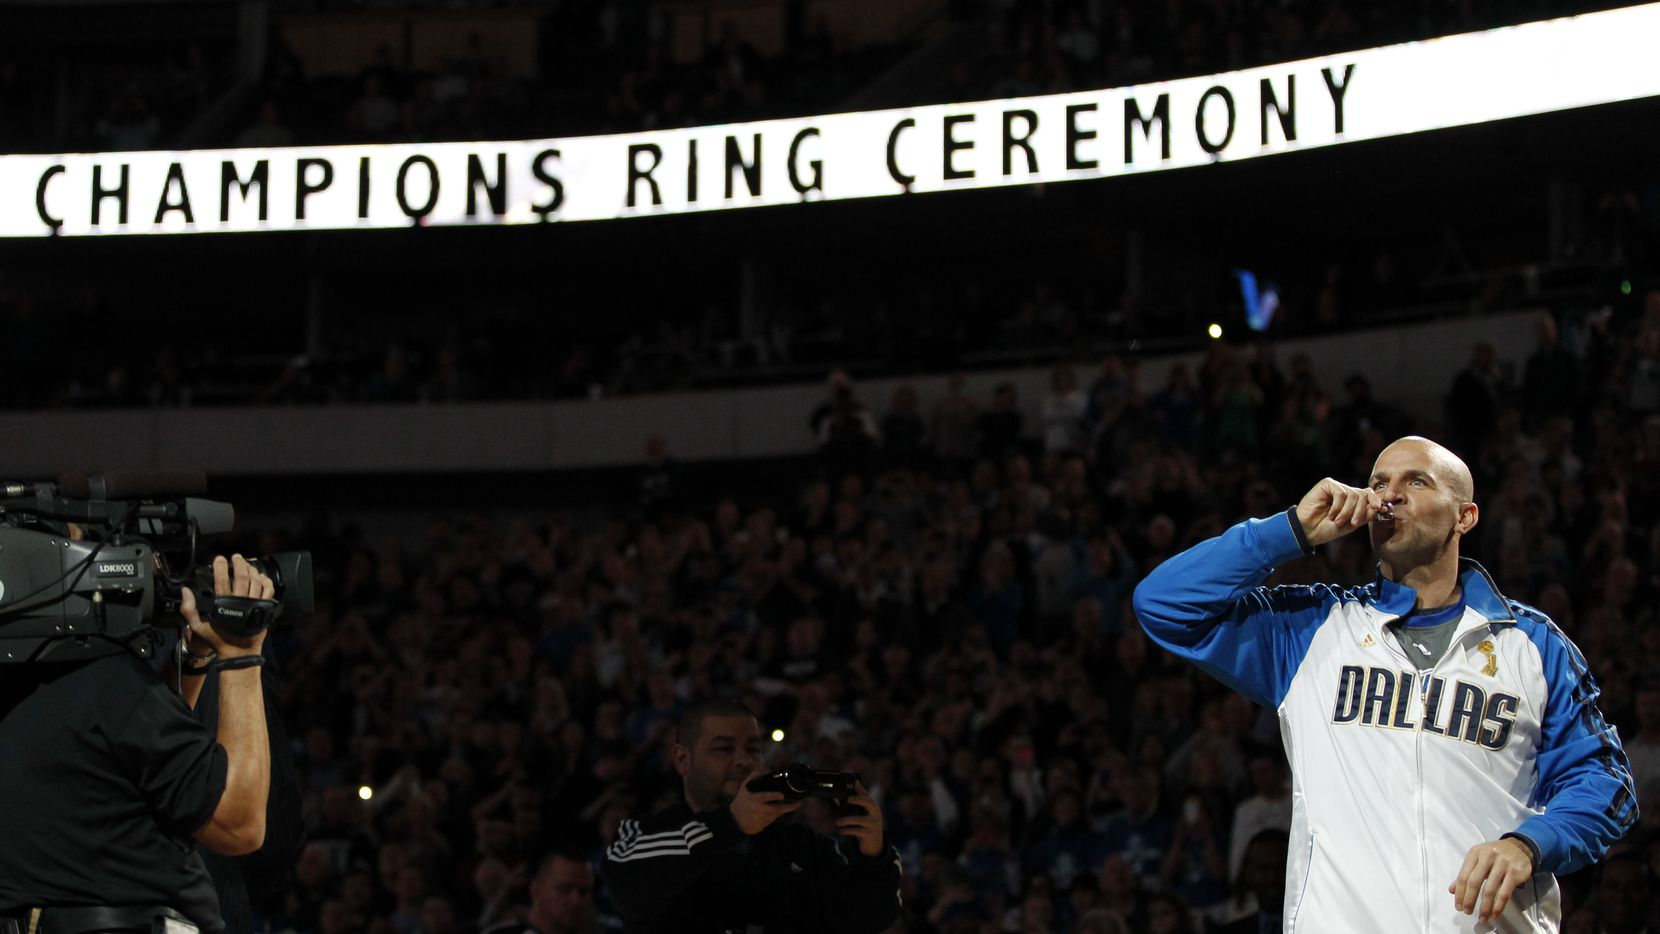 Dallas Mavericks point guard Jason Kidd (2) kisses his NBA championship ring during the ring ceremony at the American Airlines Center in Dallas on January 25, 2012.